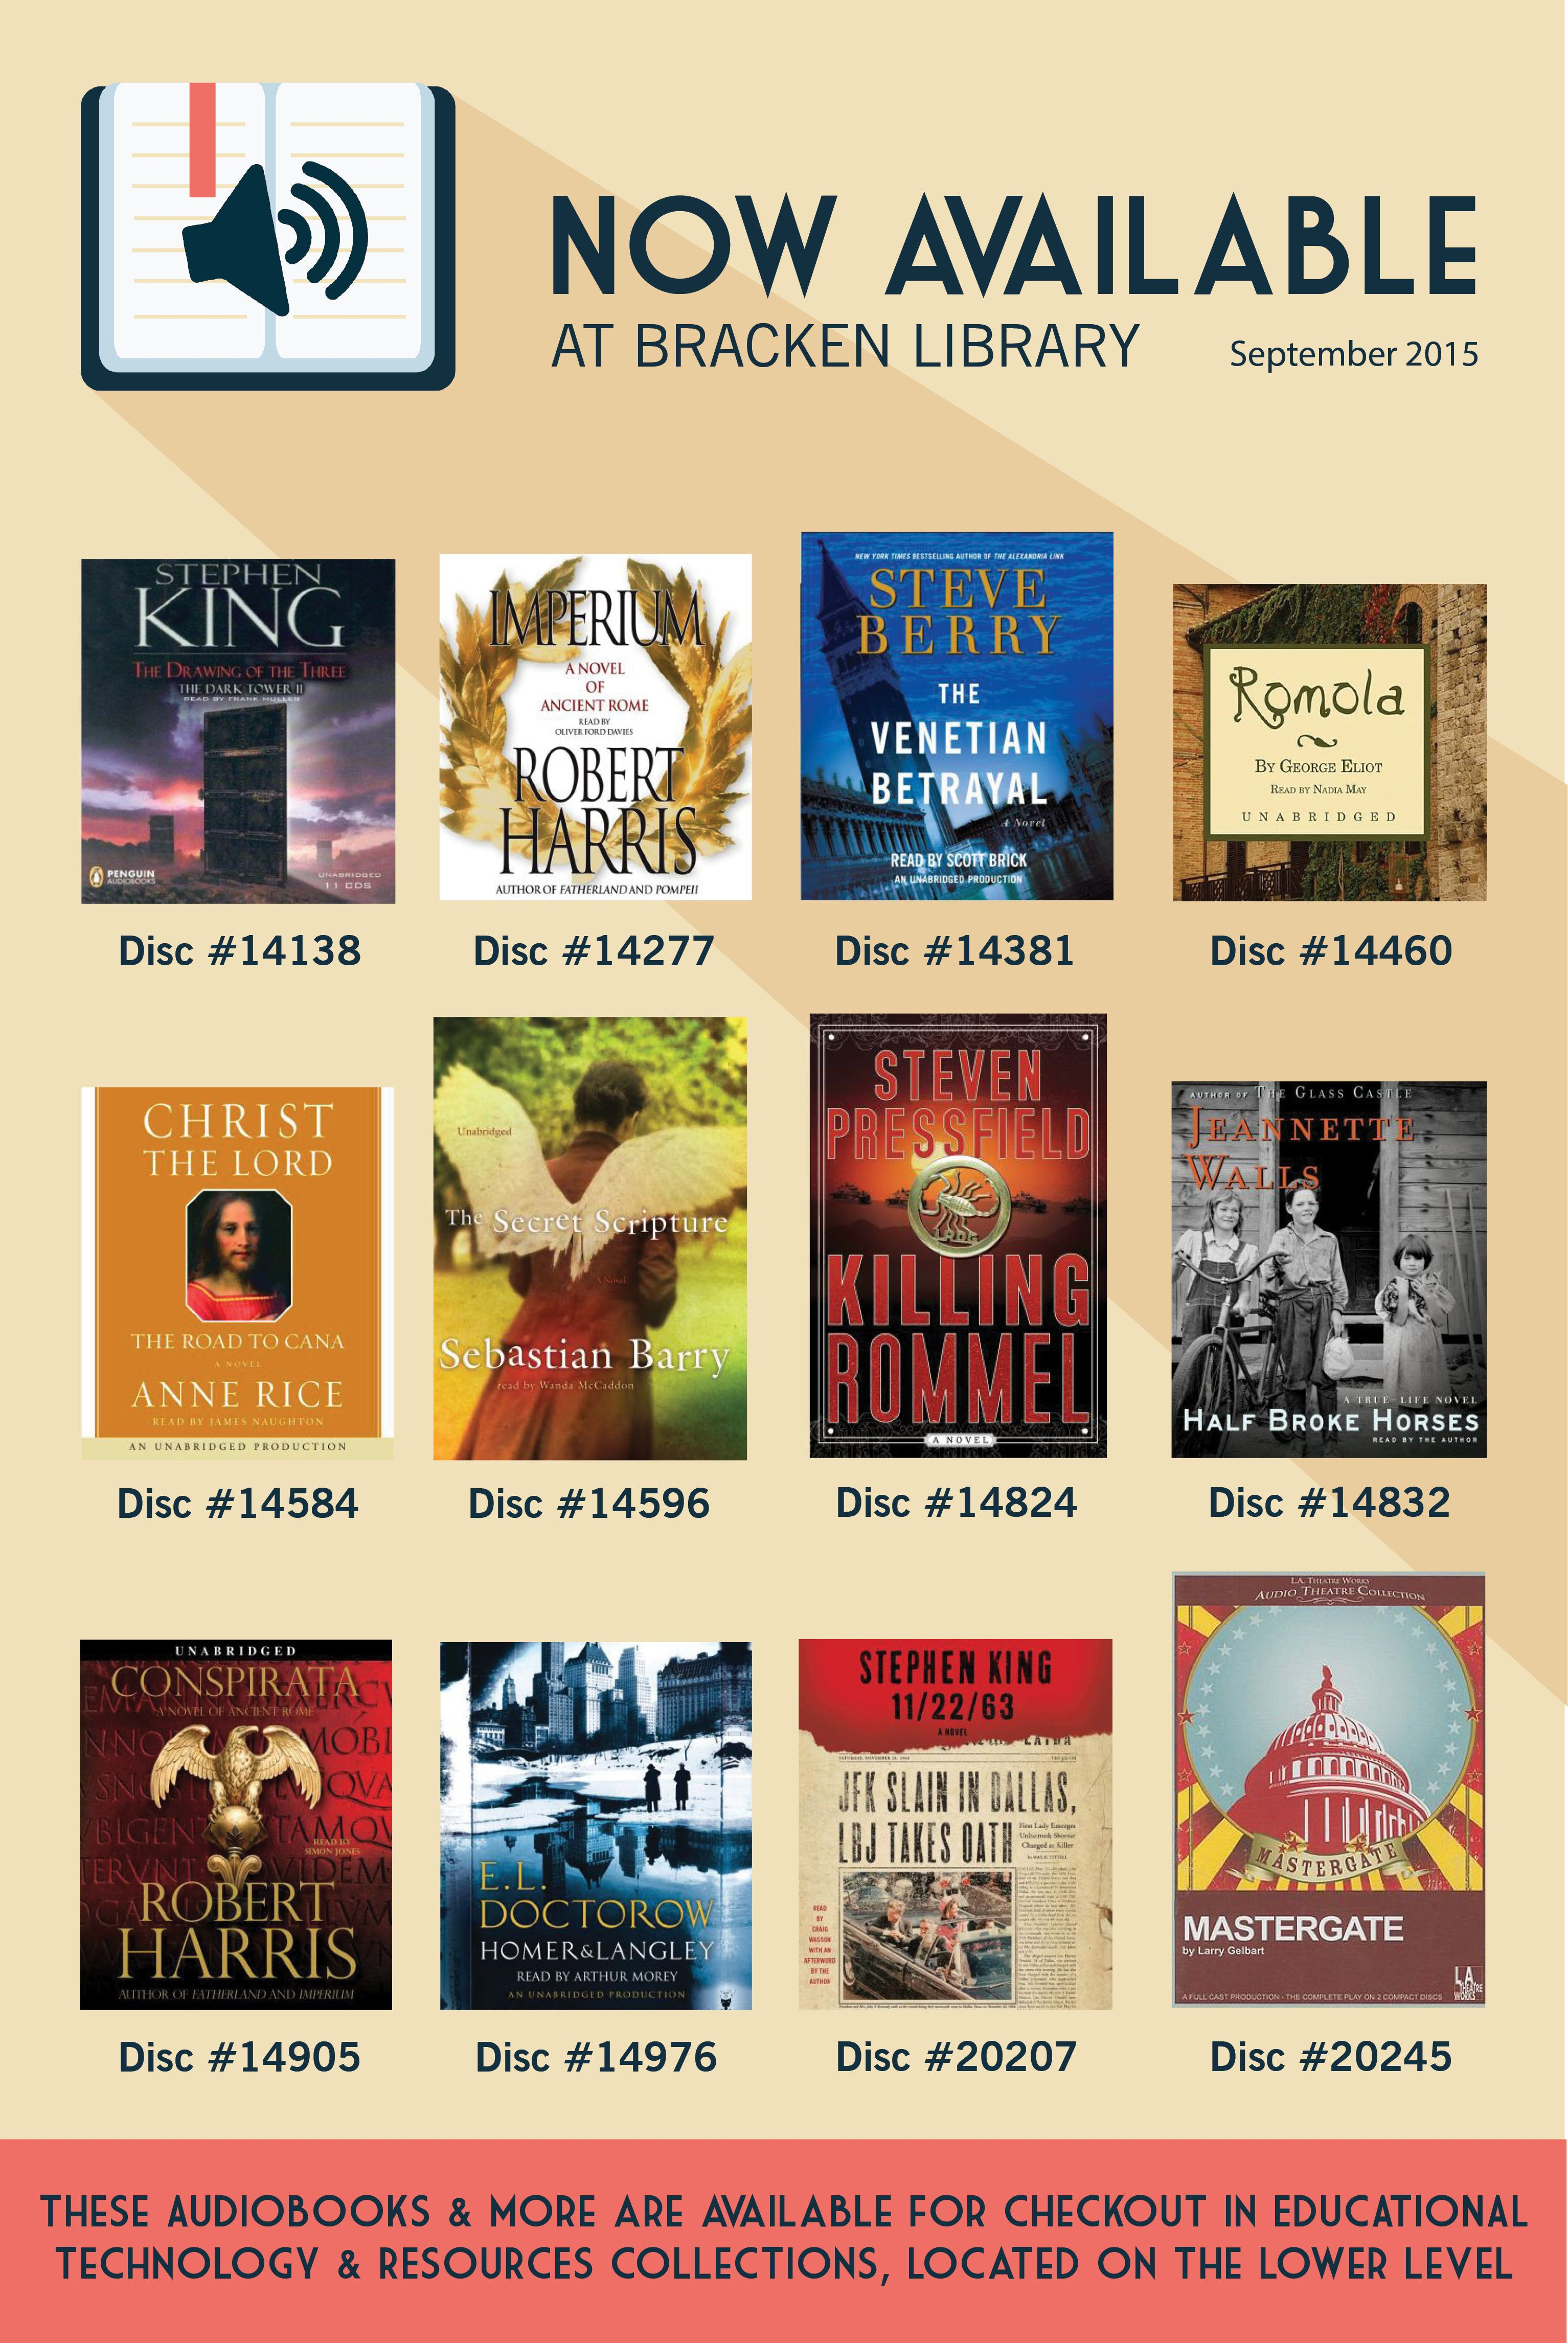 Audiobooks That Are Now Available At Bracken Library September 2015 Ball State University Library Health Science